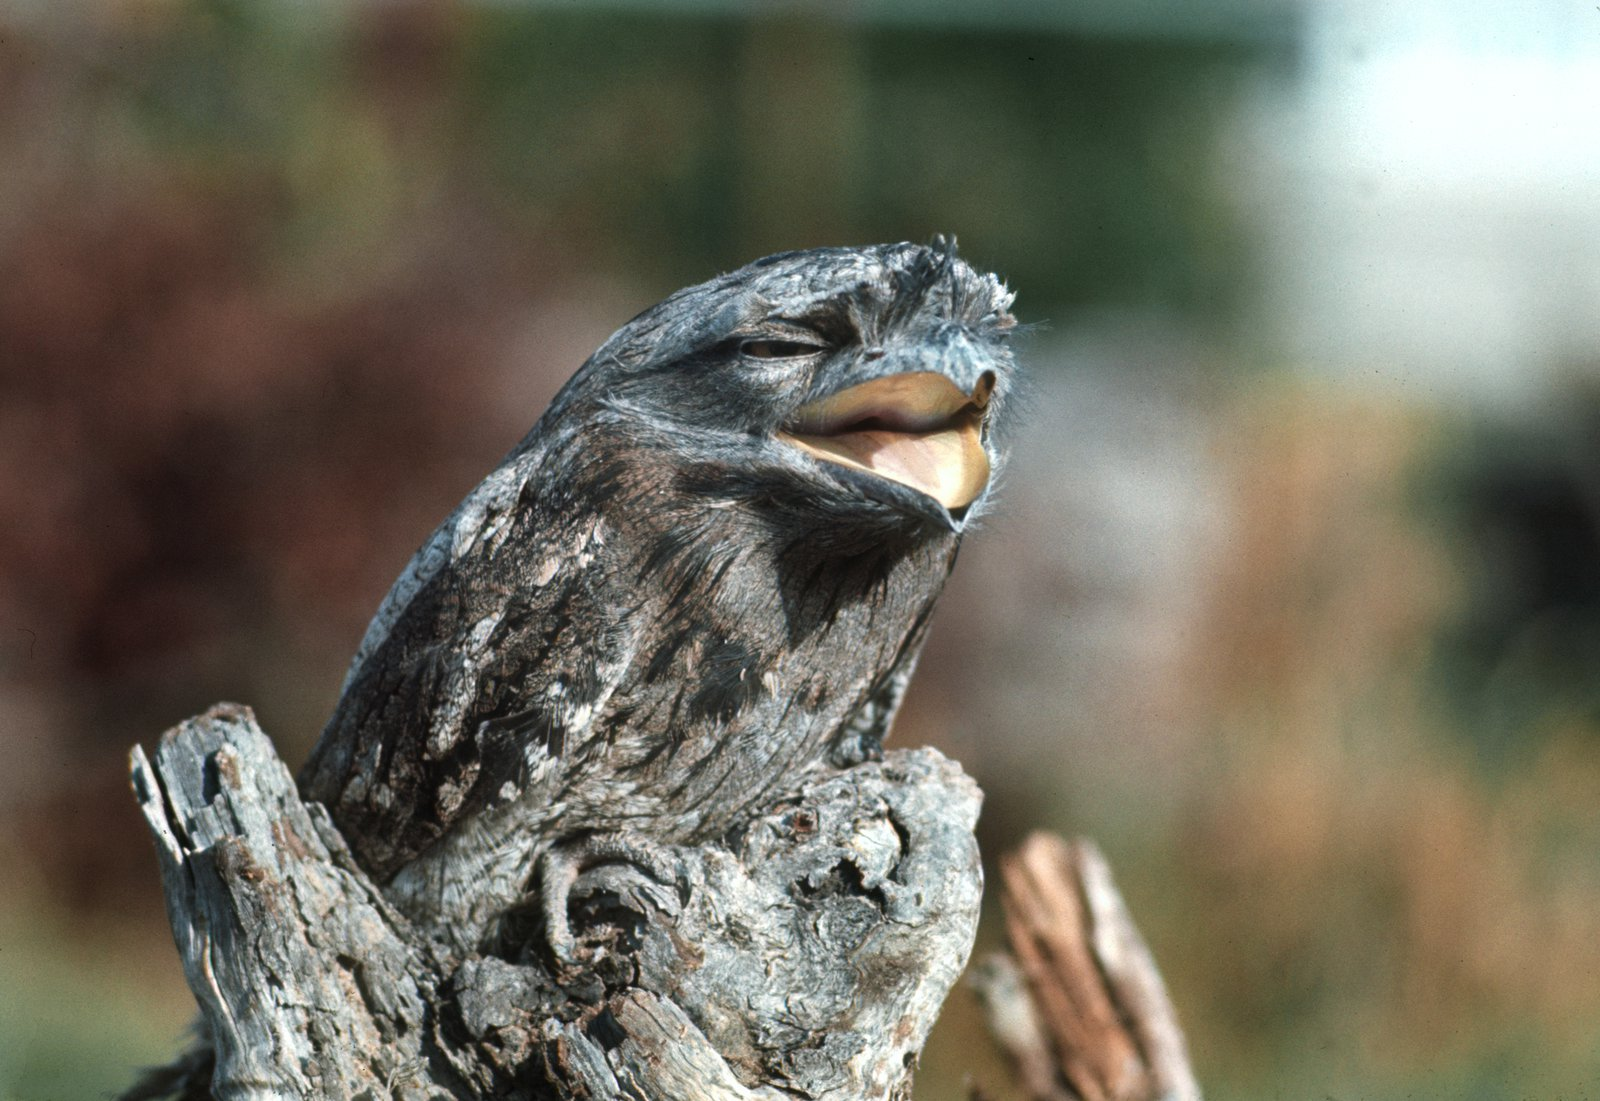 Tawny Frogmouth - The Australian Museum